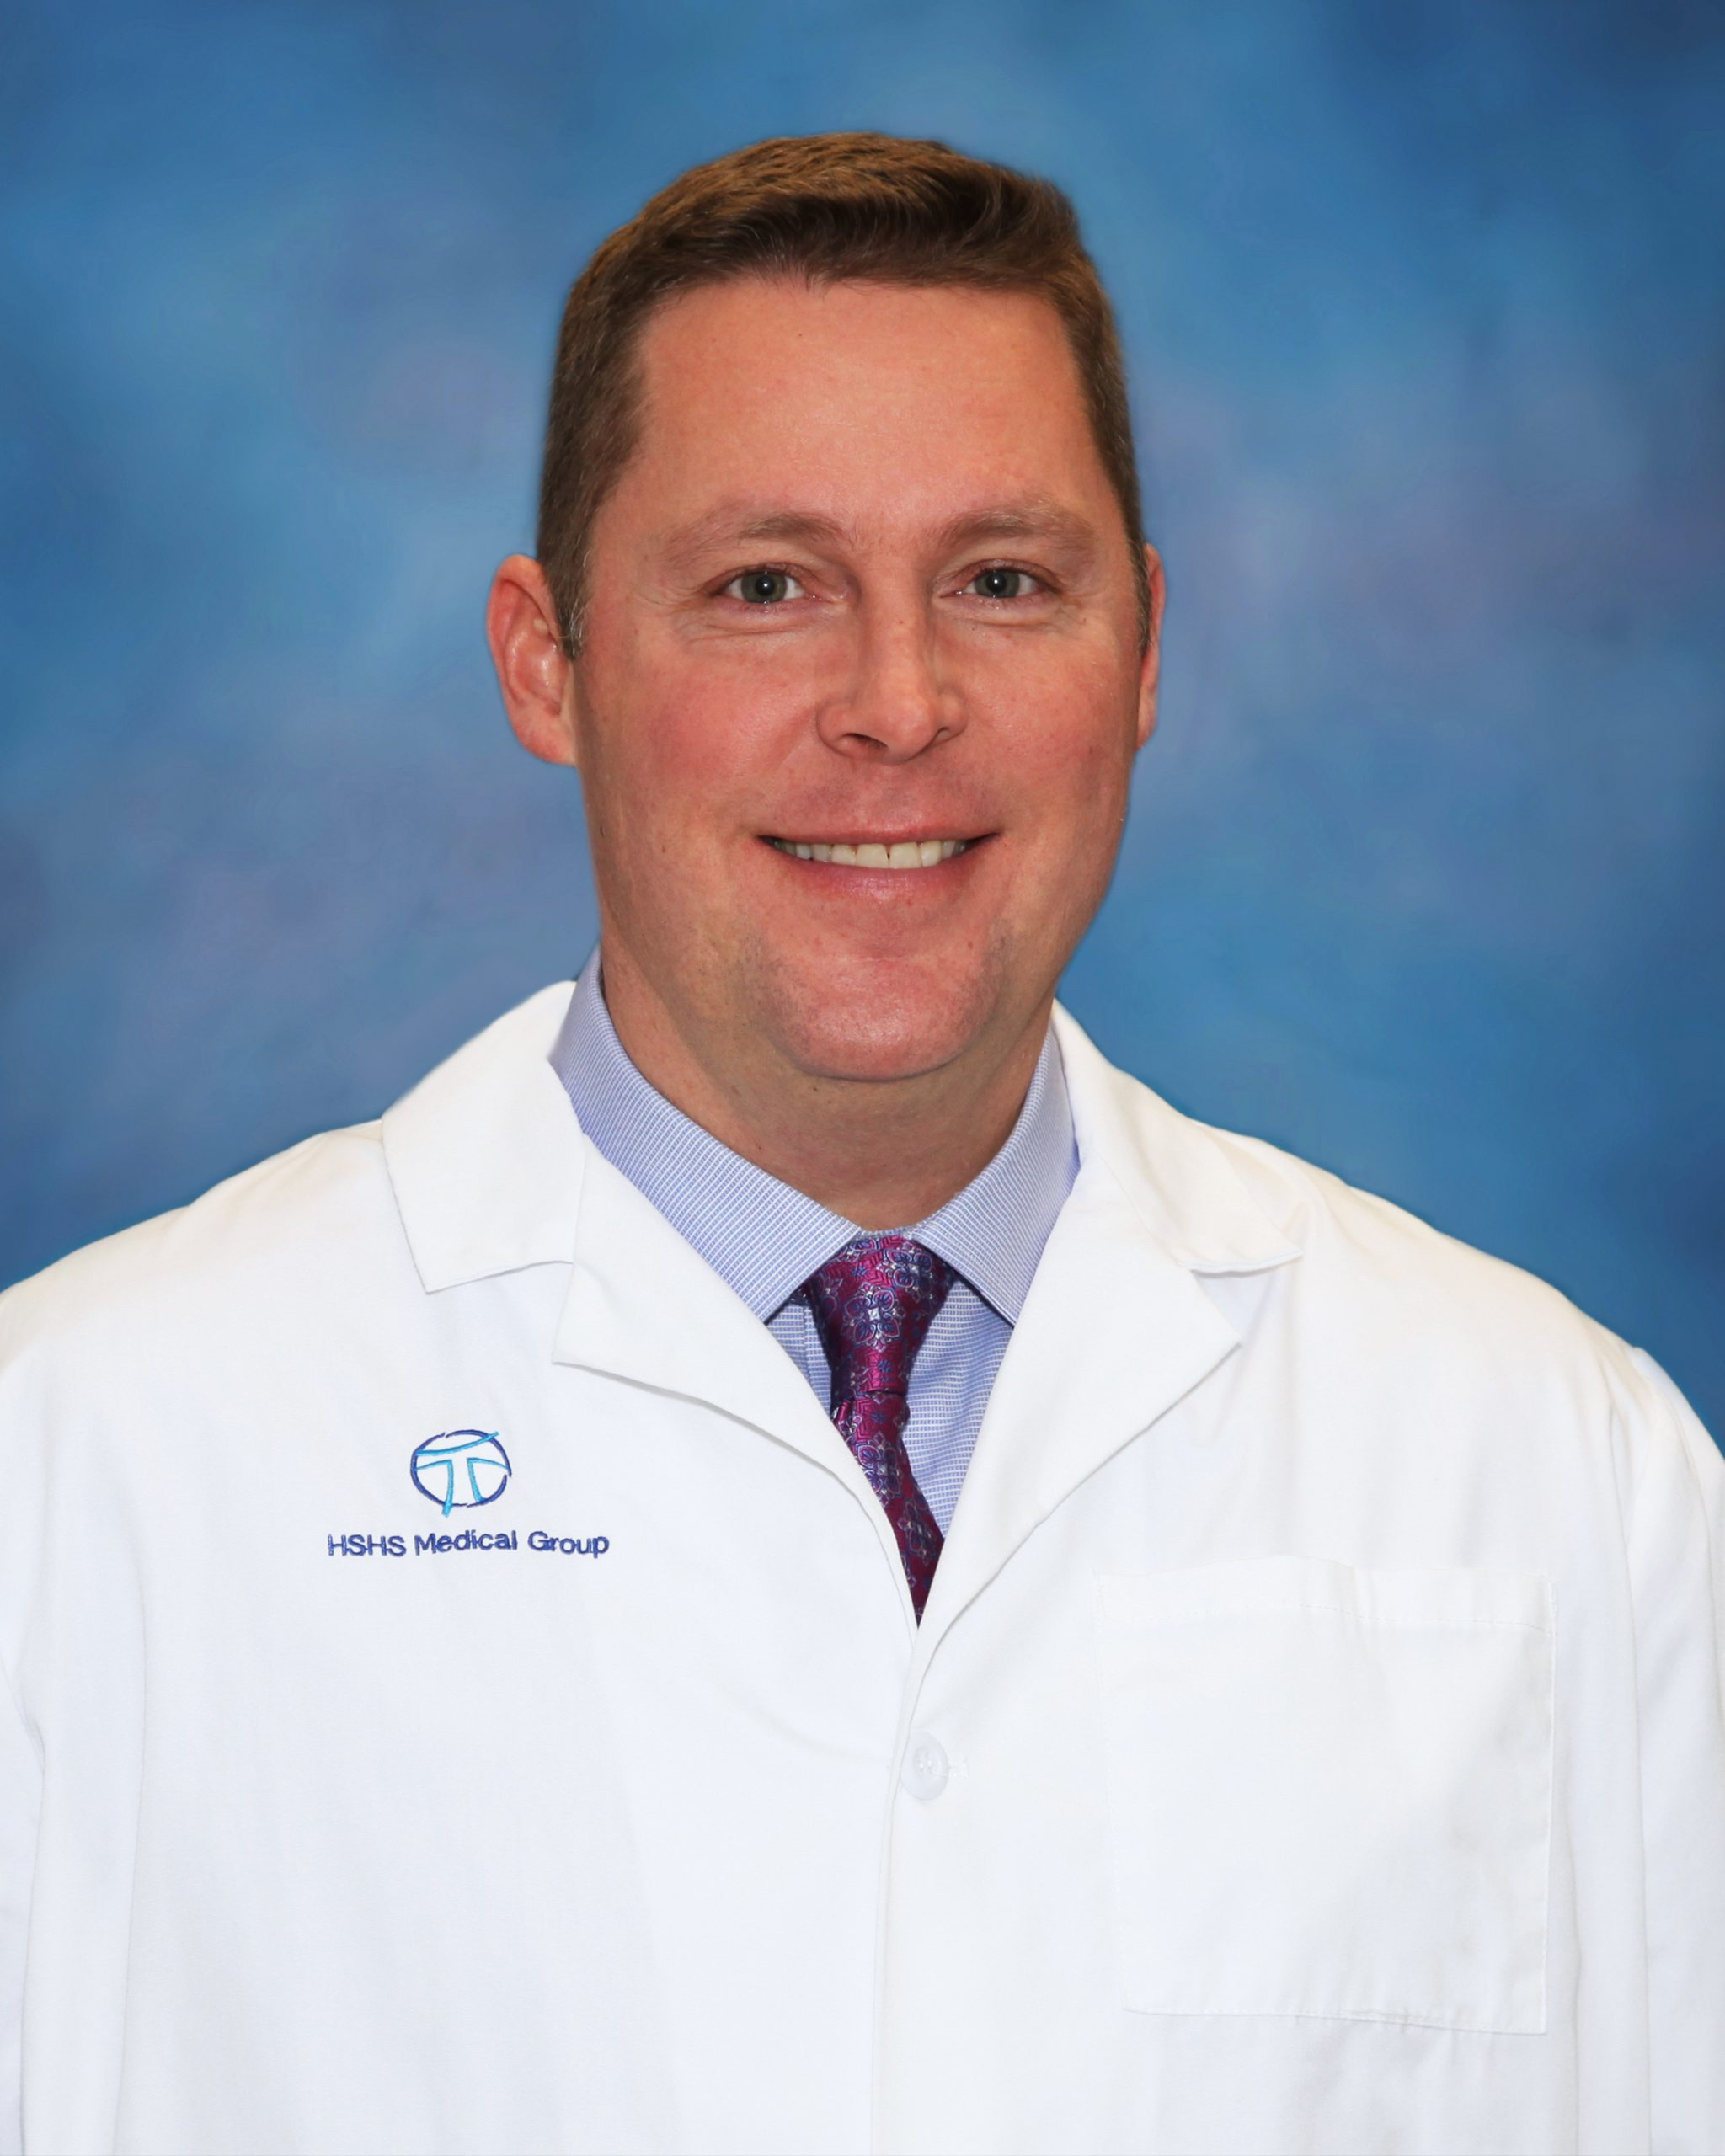 HSHS Medical Group Welcomes Randall Dooley, MD, Urologist